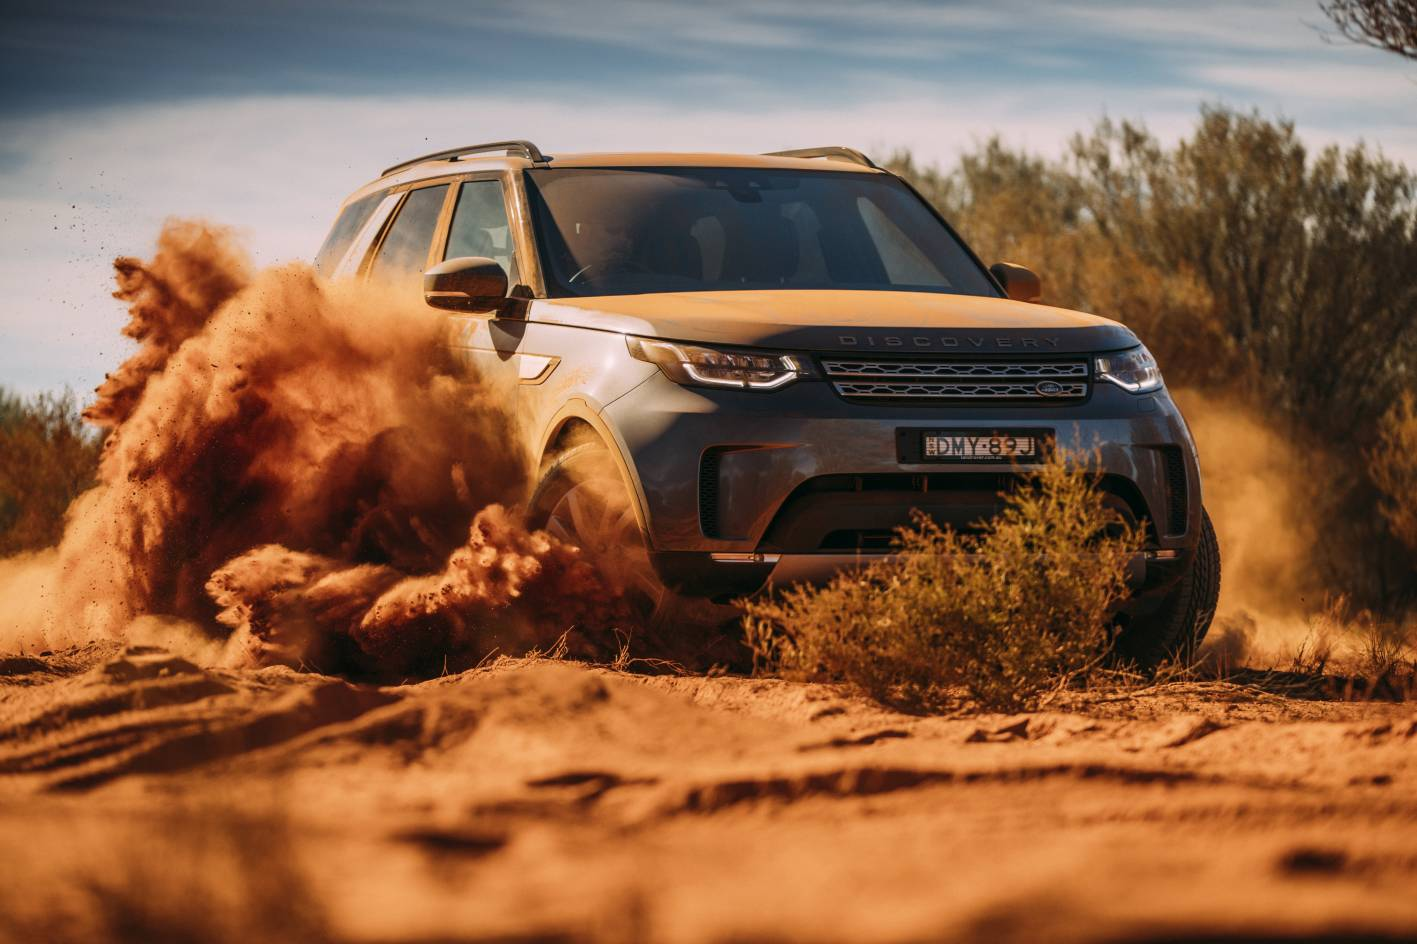 2017 Land Rover Discovery First Drive | Real Room For Seven In A Lighter, More High-Tech Package